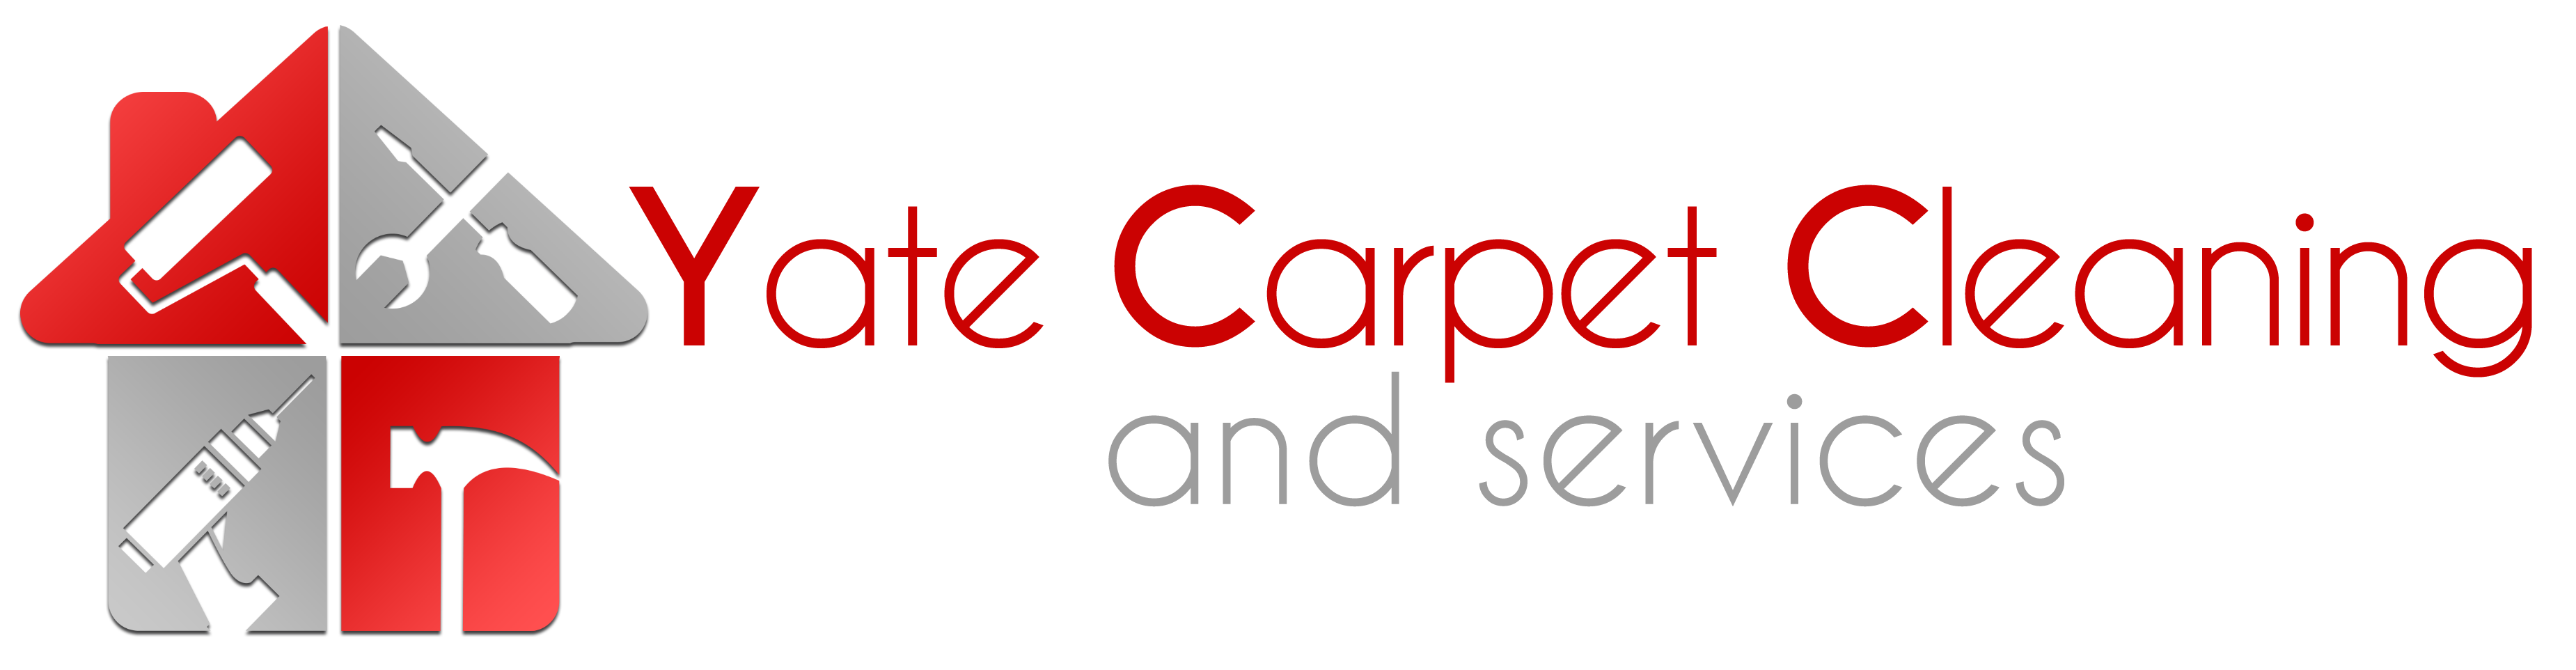 Yate Carpet Cleaning & Services